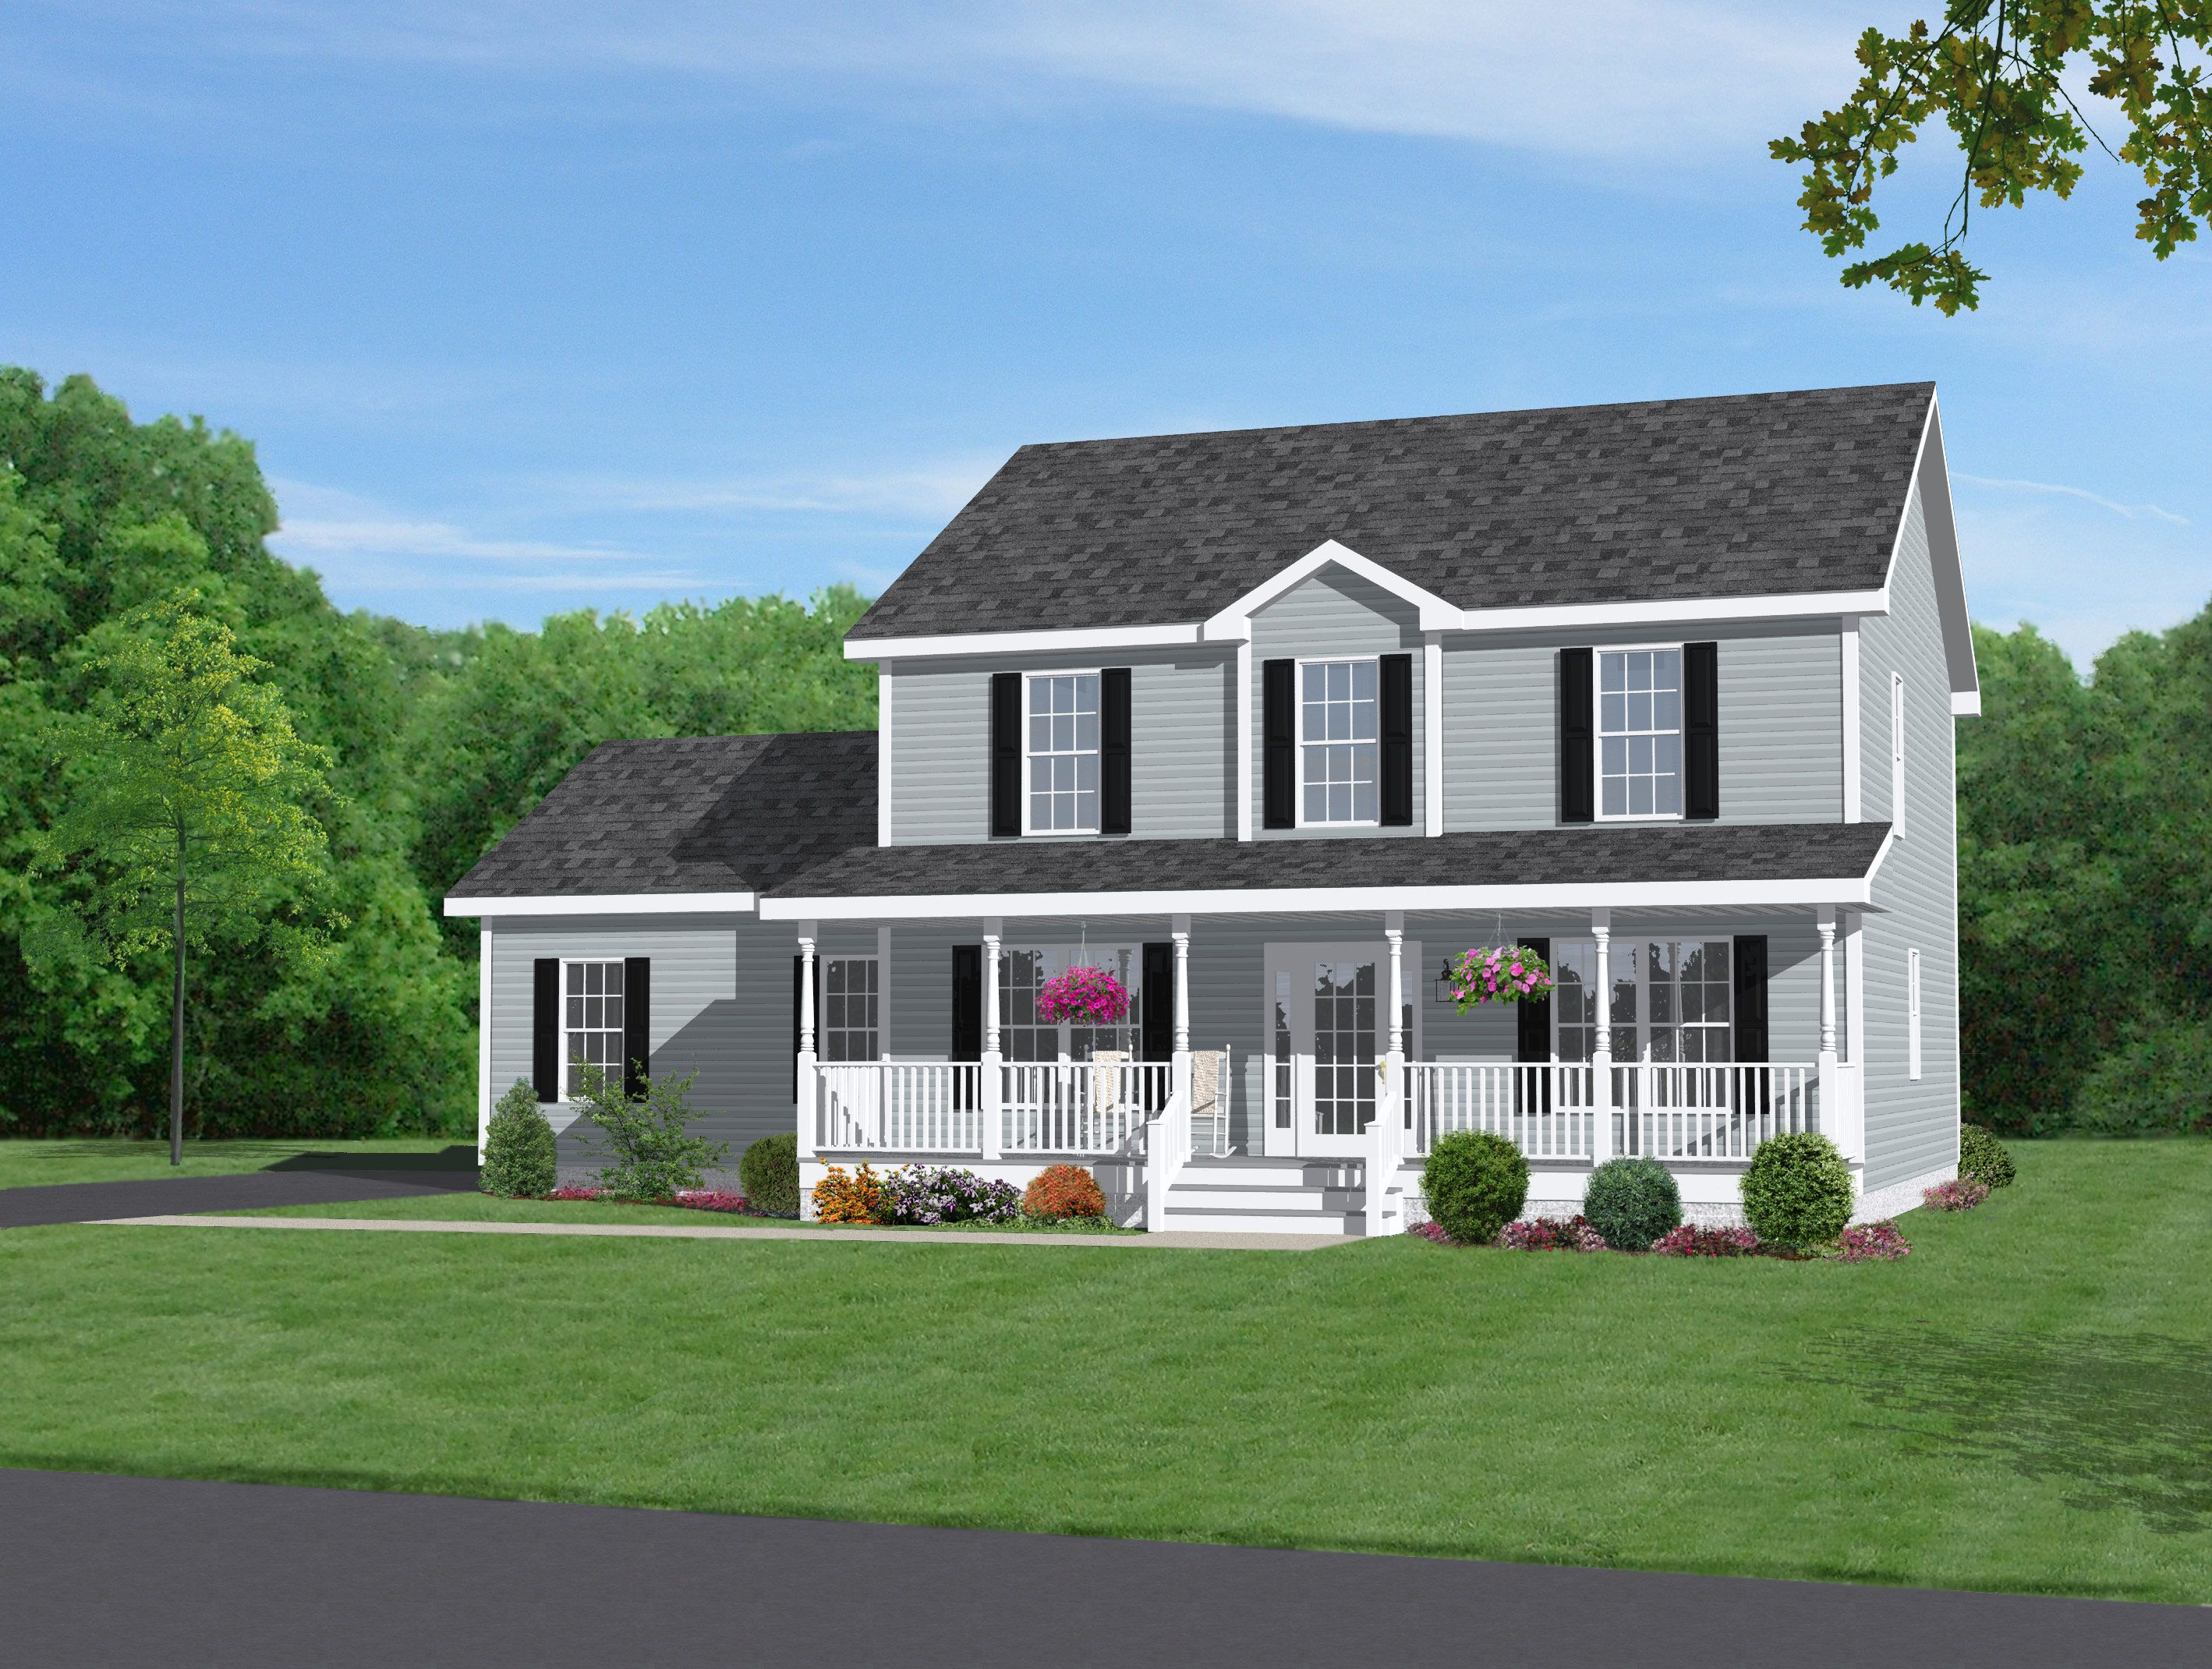 Pin By Mindy Stewart On Dream Home Colonial House Plans House With Porch Porch House Plans